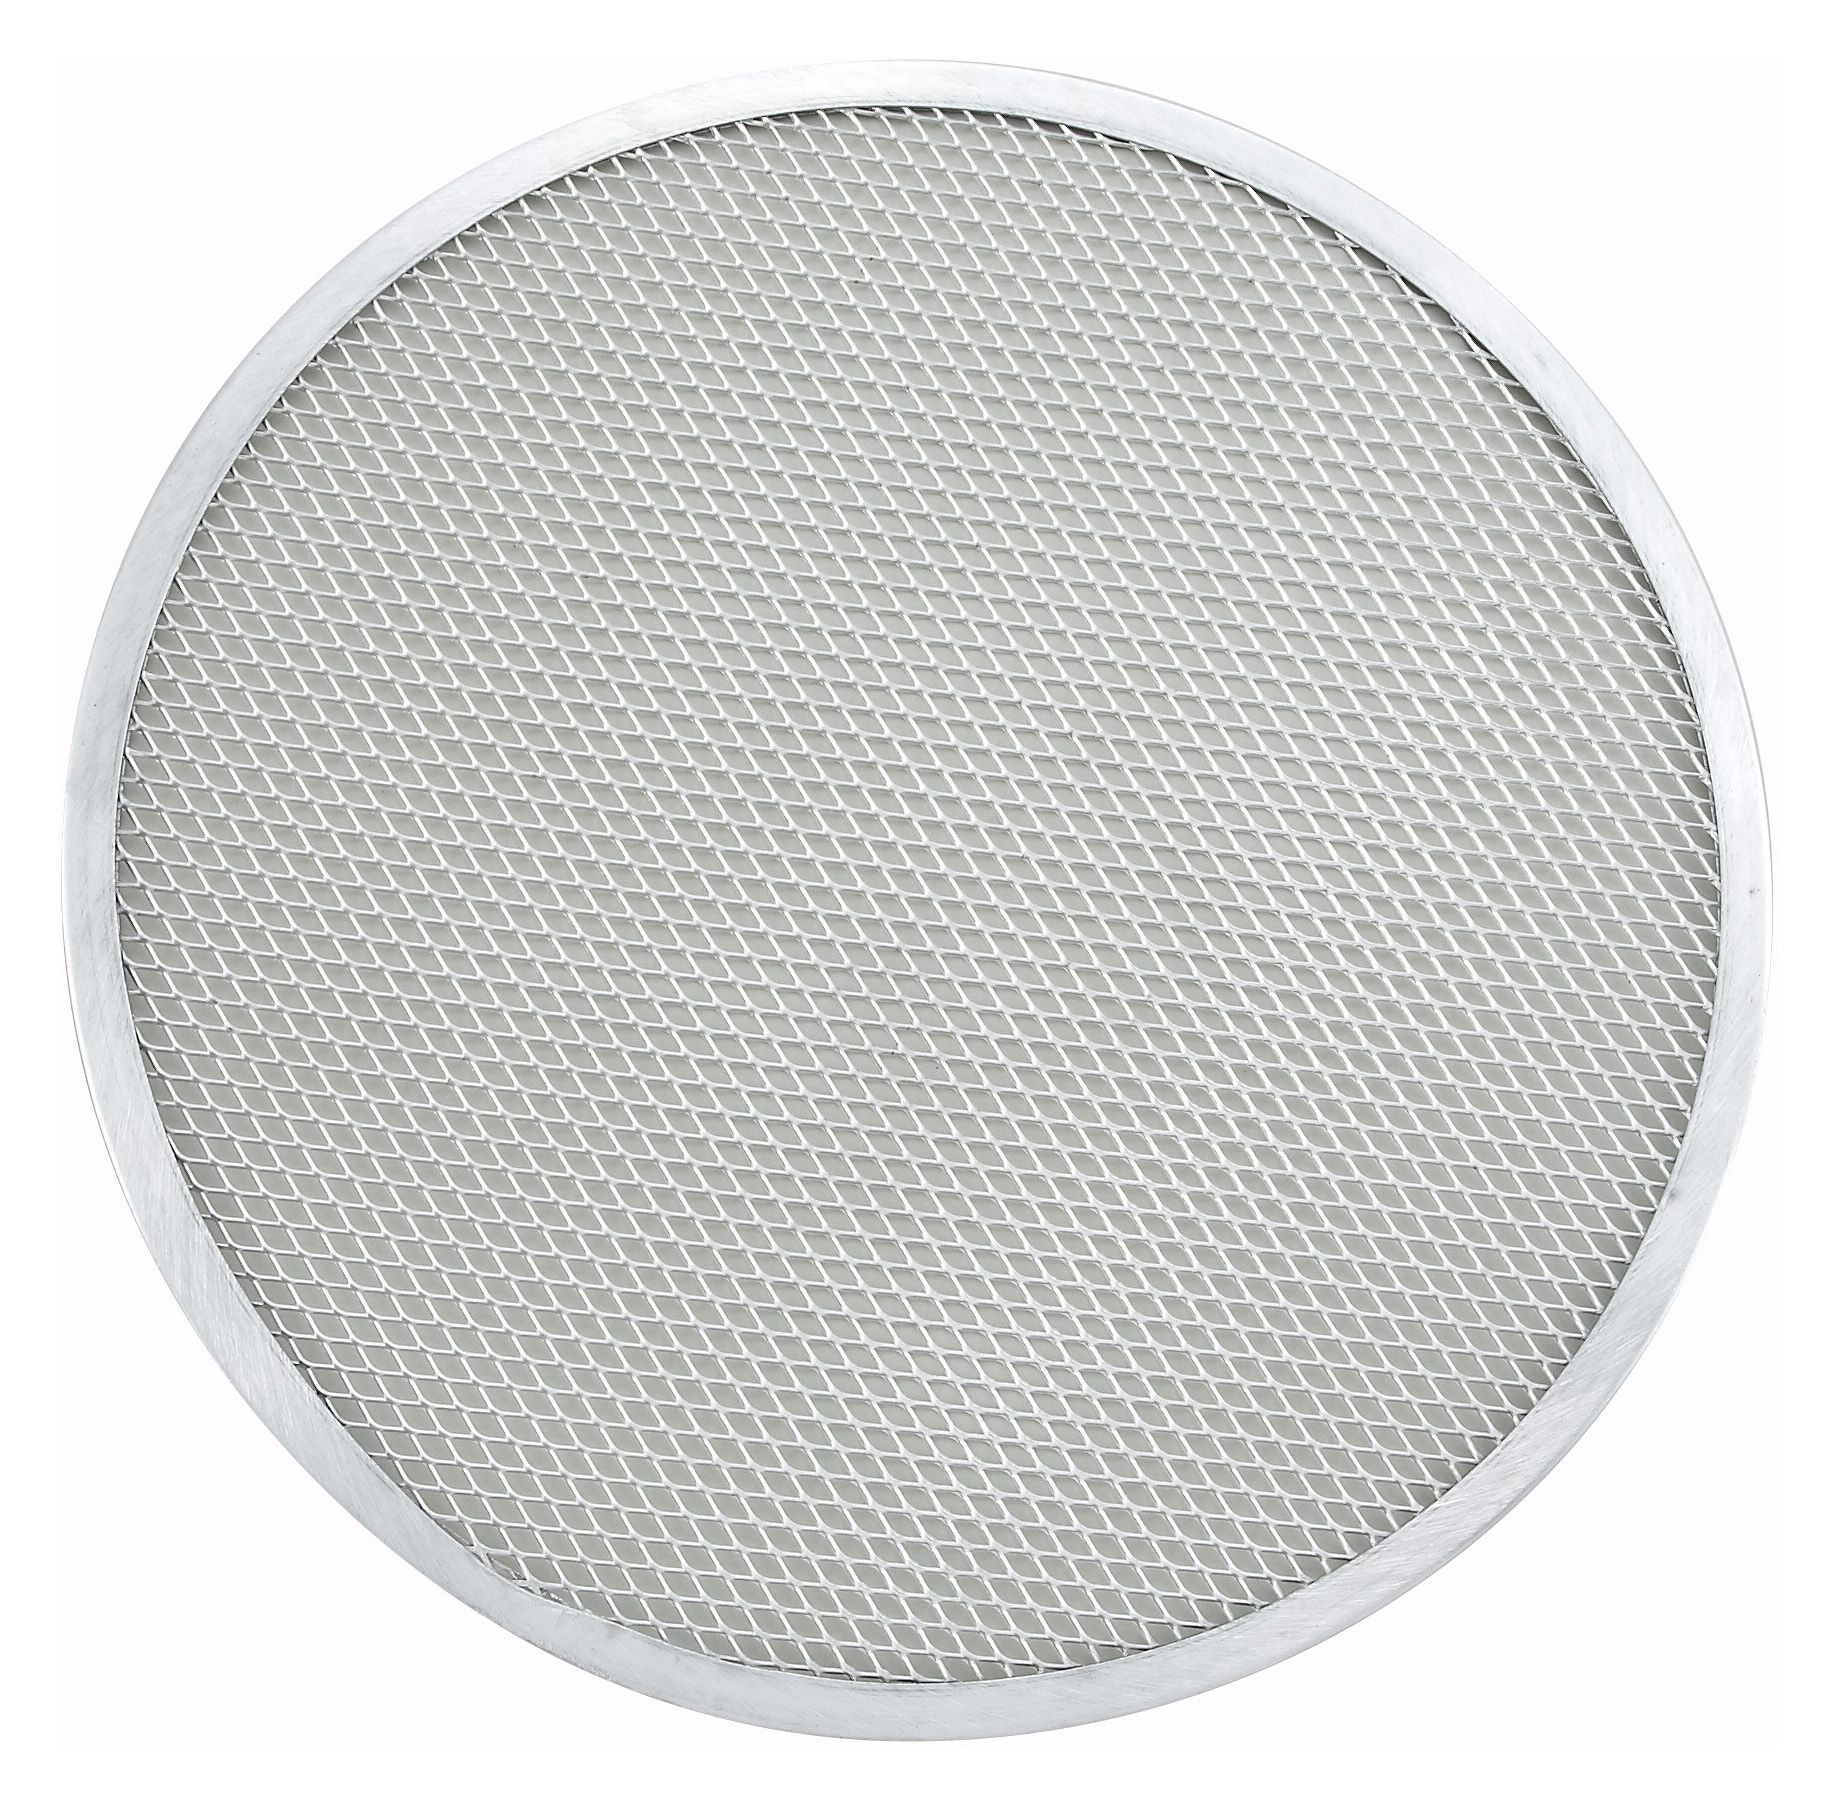 Seamless Aluminum Pizza Screen - 13